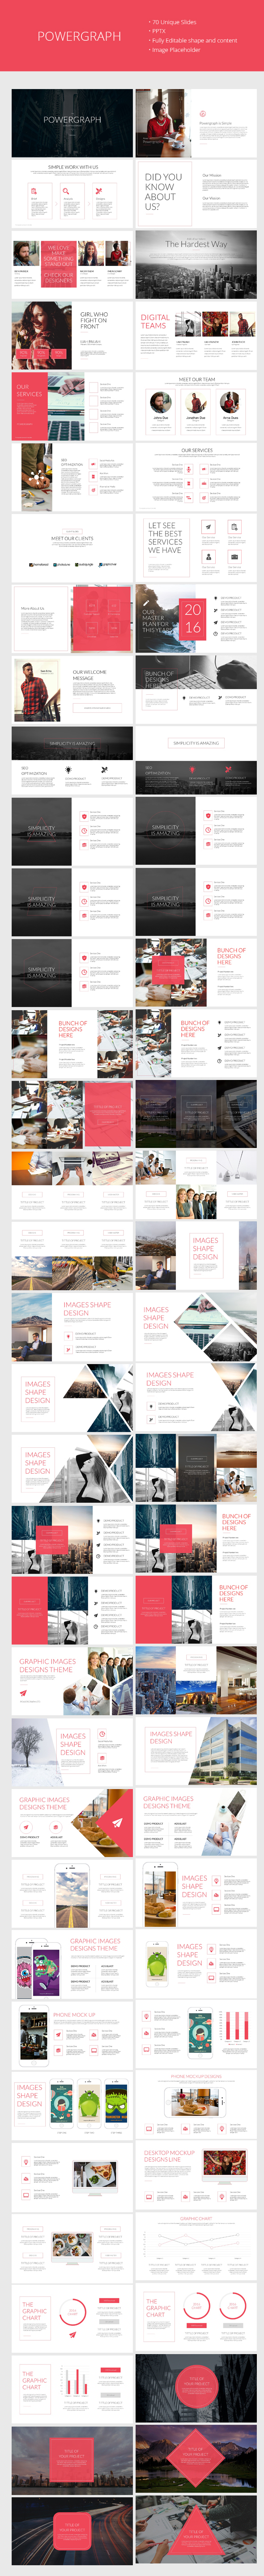 Powergraph Clean Powerpoint Template (PowerPoint Templates)